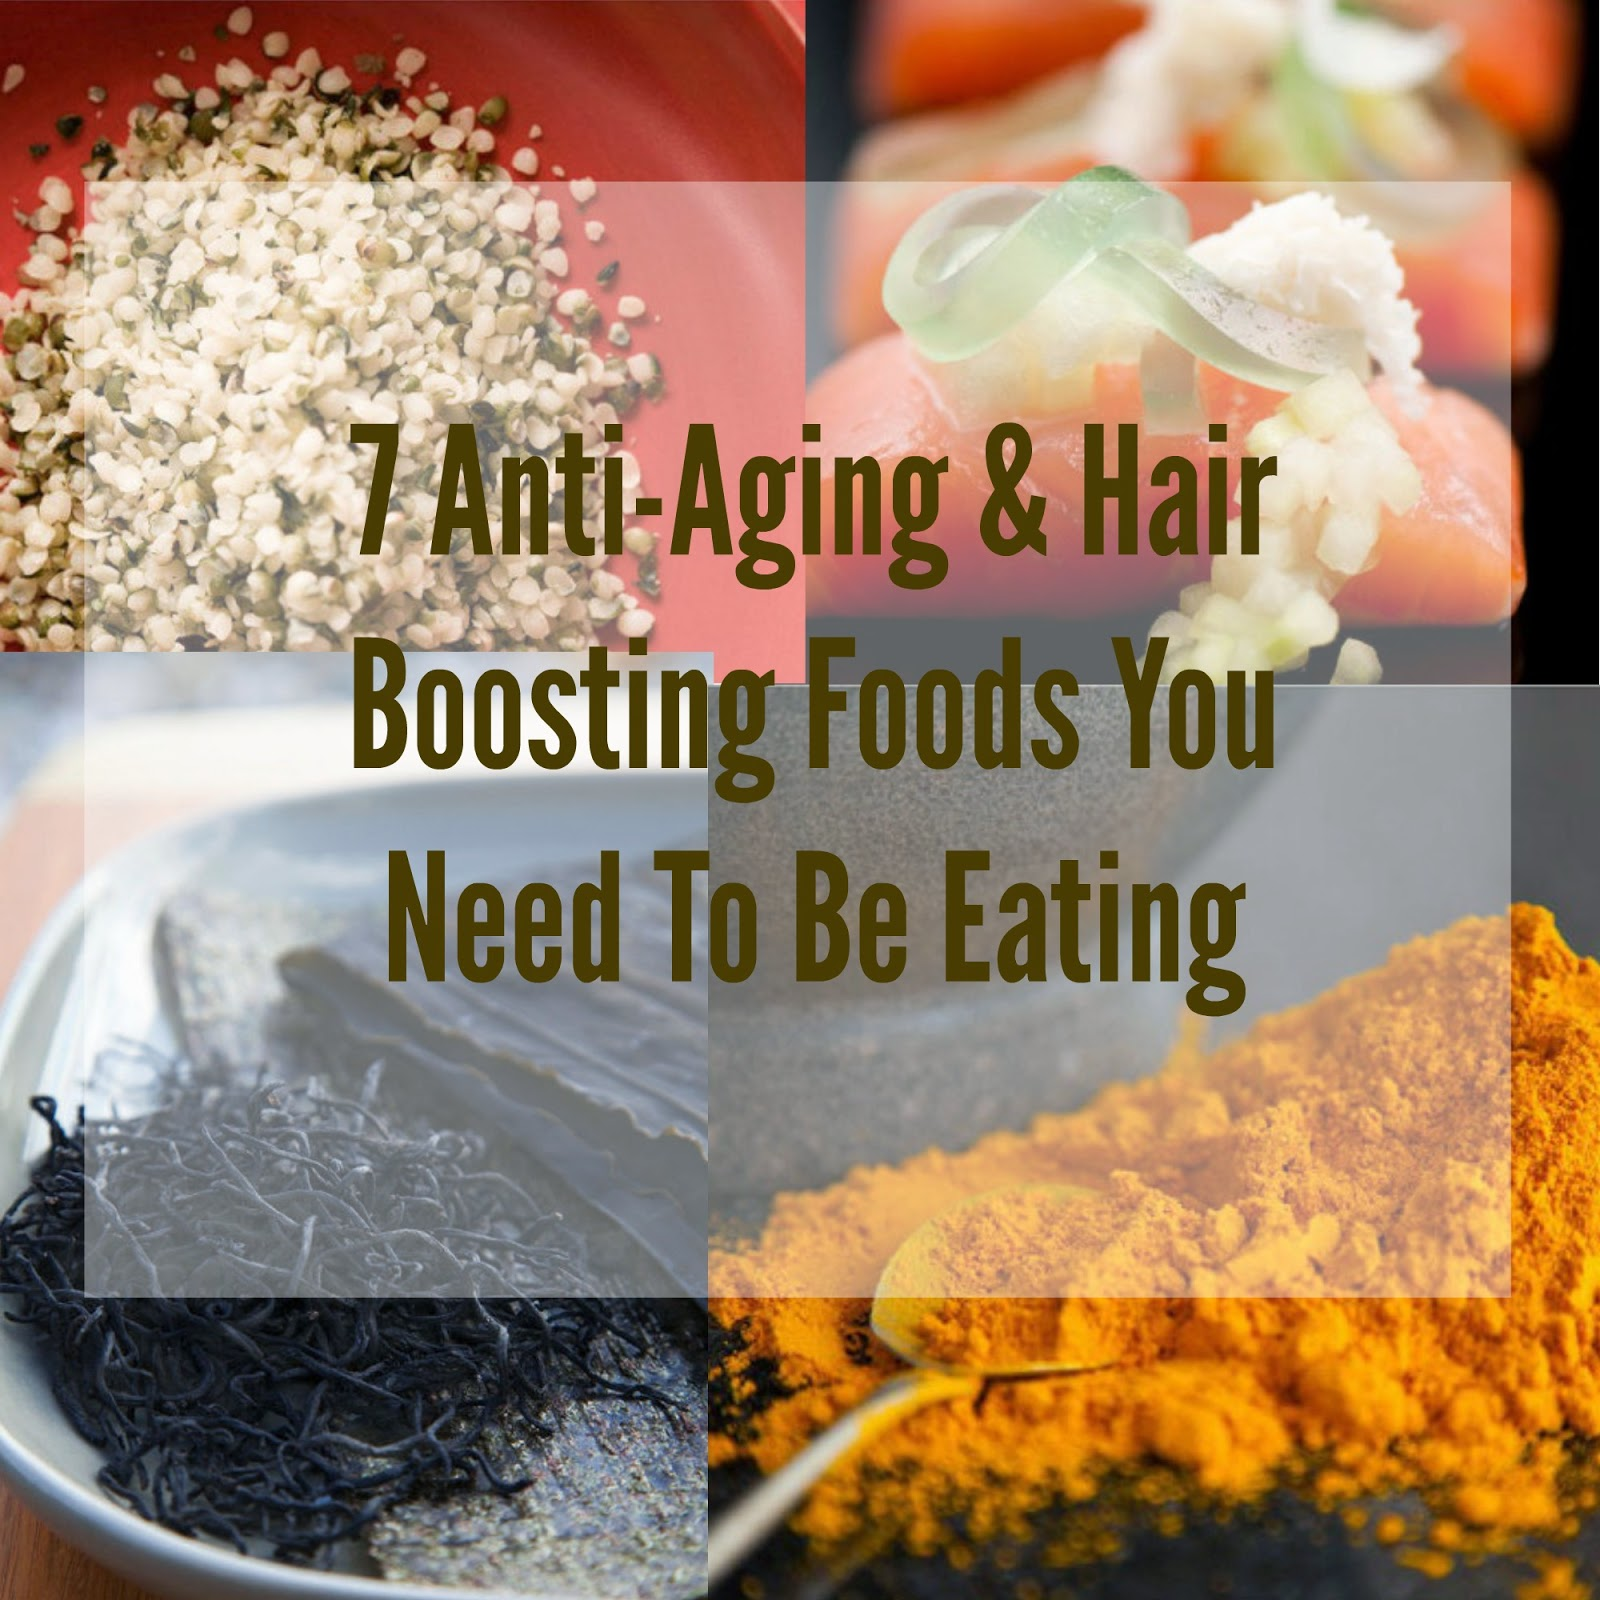 7 Anti-Aging & Hair Boosting Foods You Need To Be Eating